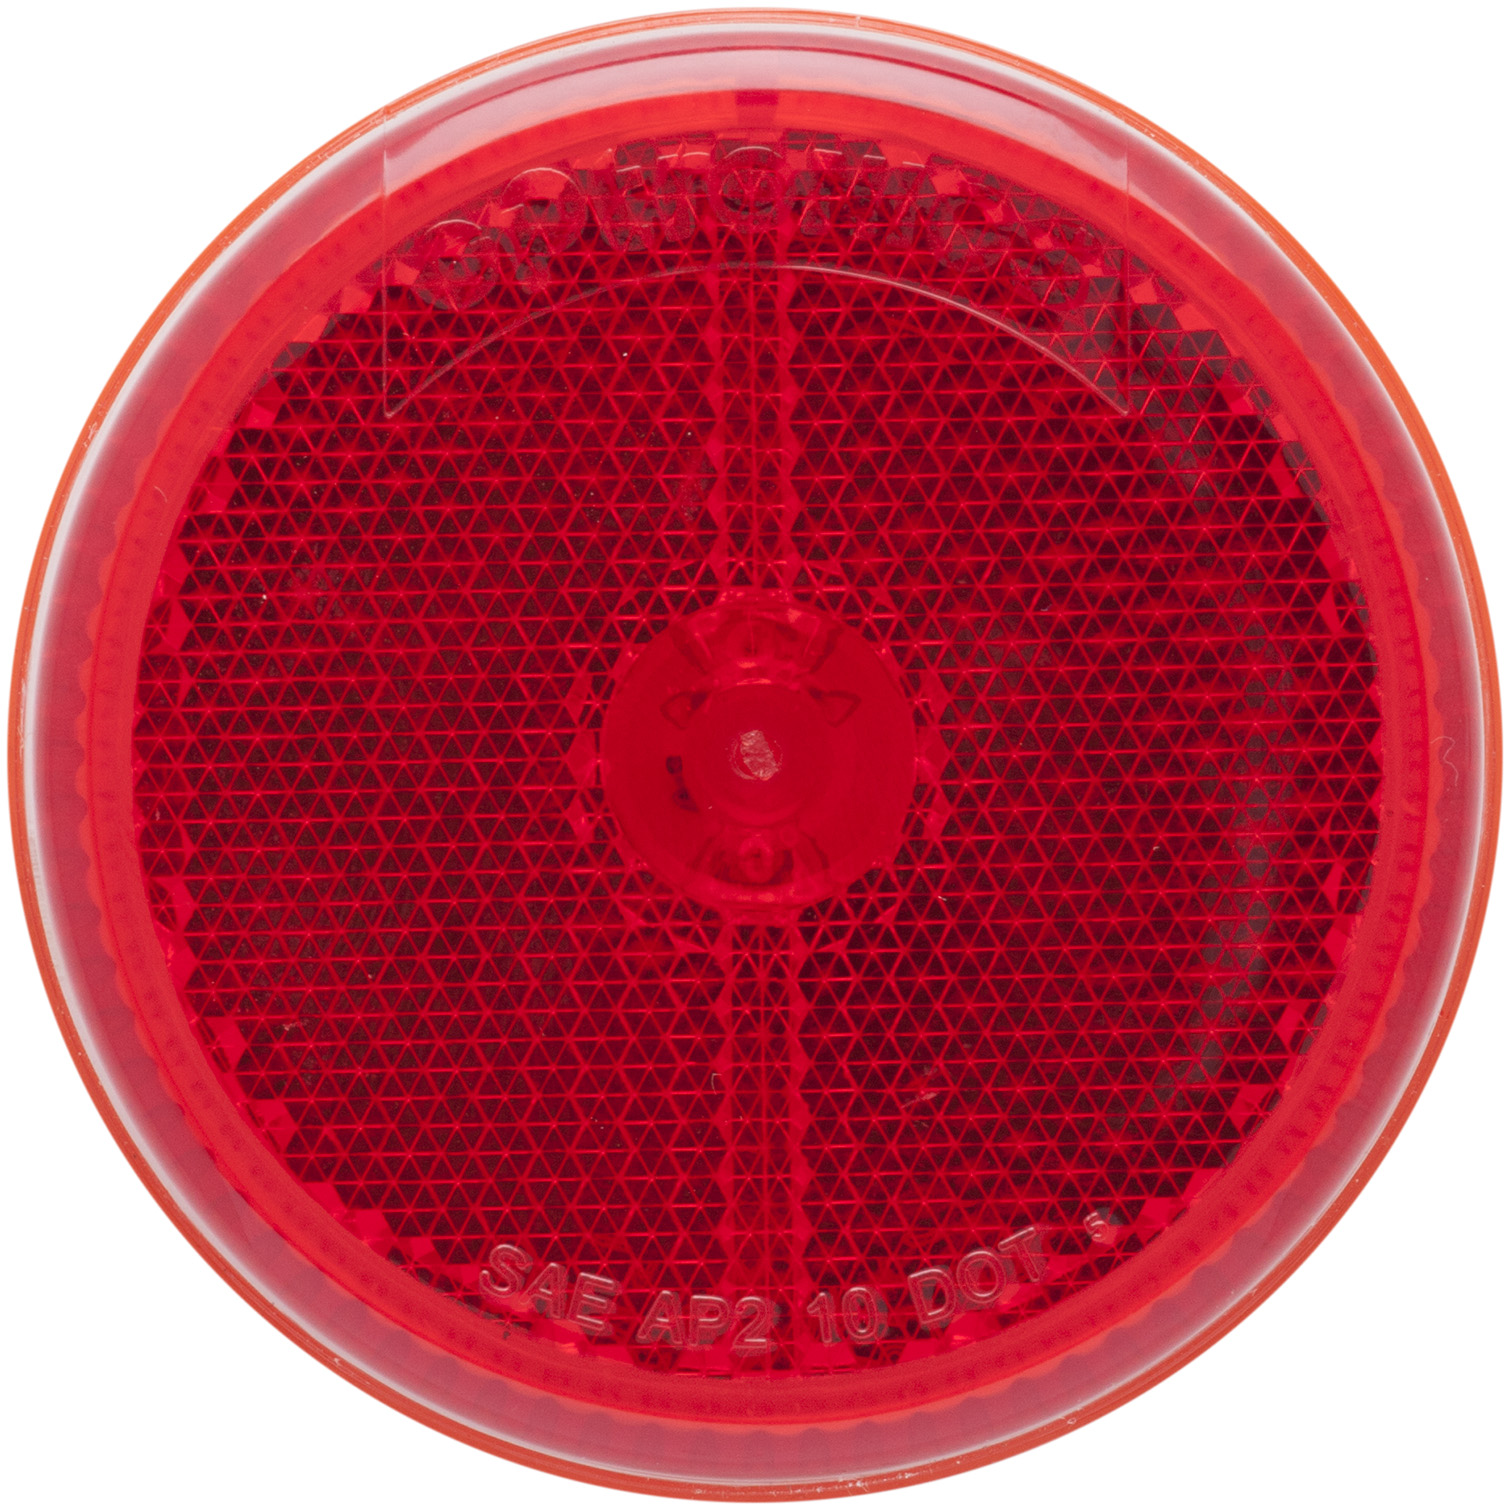 MCL59RB_OPTRONICS MCL59RB Red 2.5 in. Marker Clearance Light for Grommet Mount with Reflex